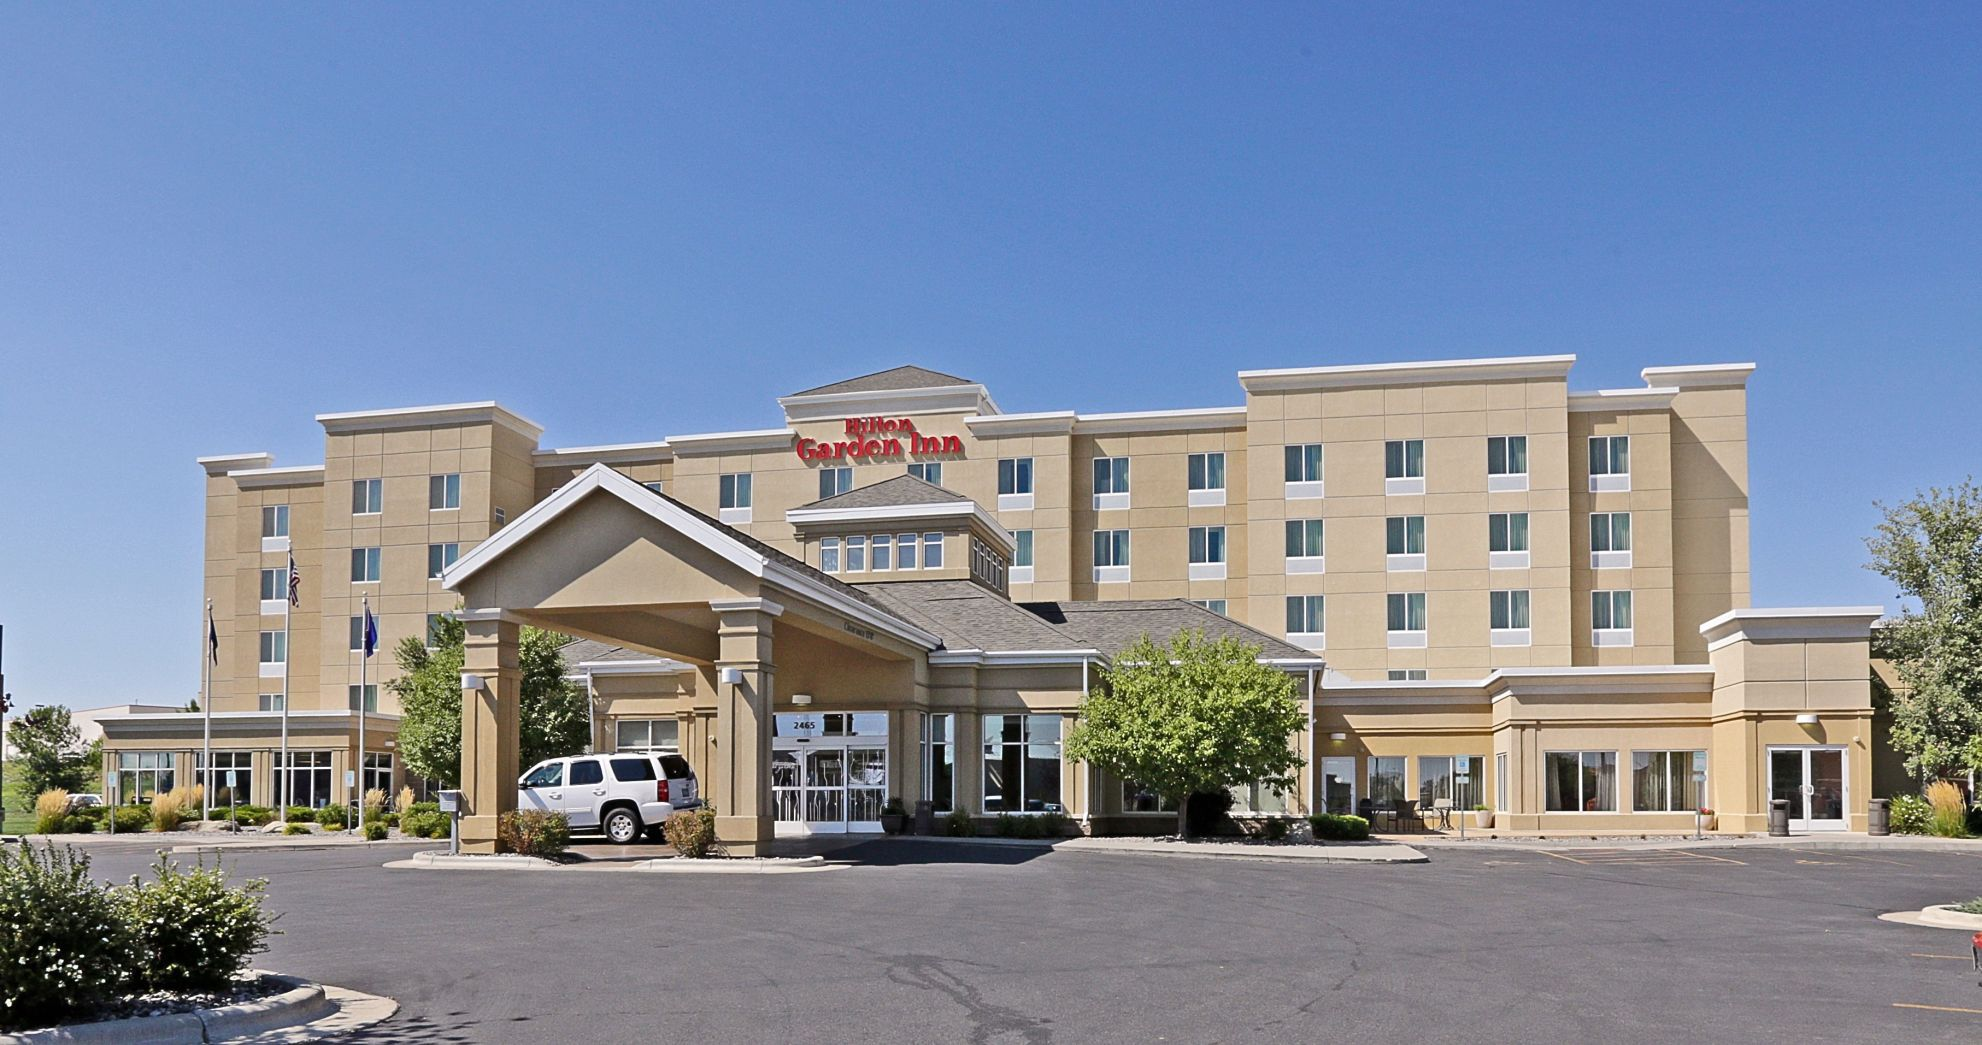 Hilton Garden Inn, Gateway Hospitality Group Pay $4M Settlement After  Withholding Tips From Servers